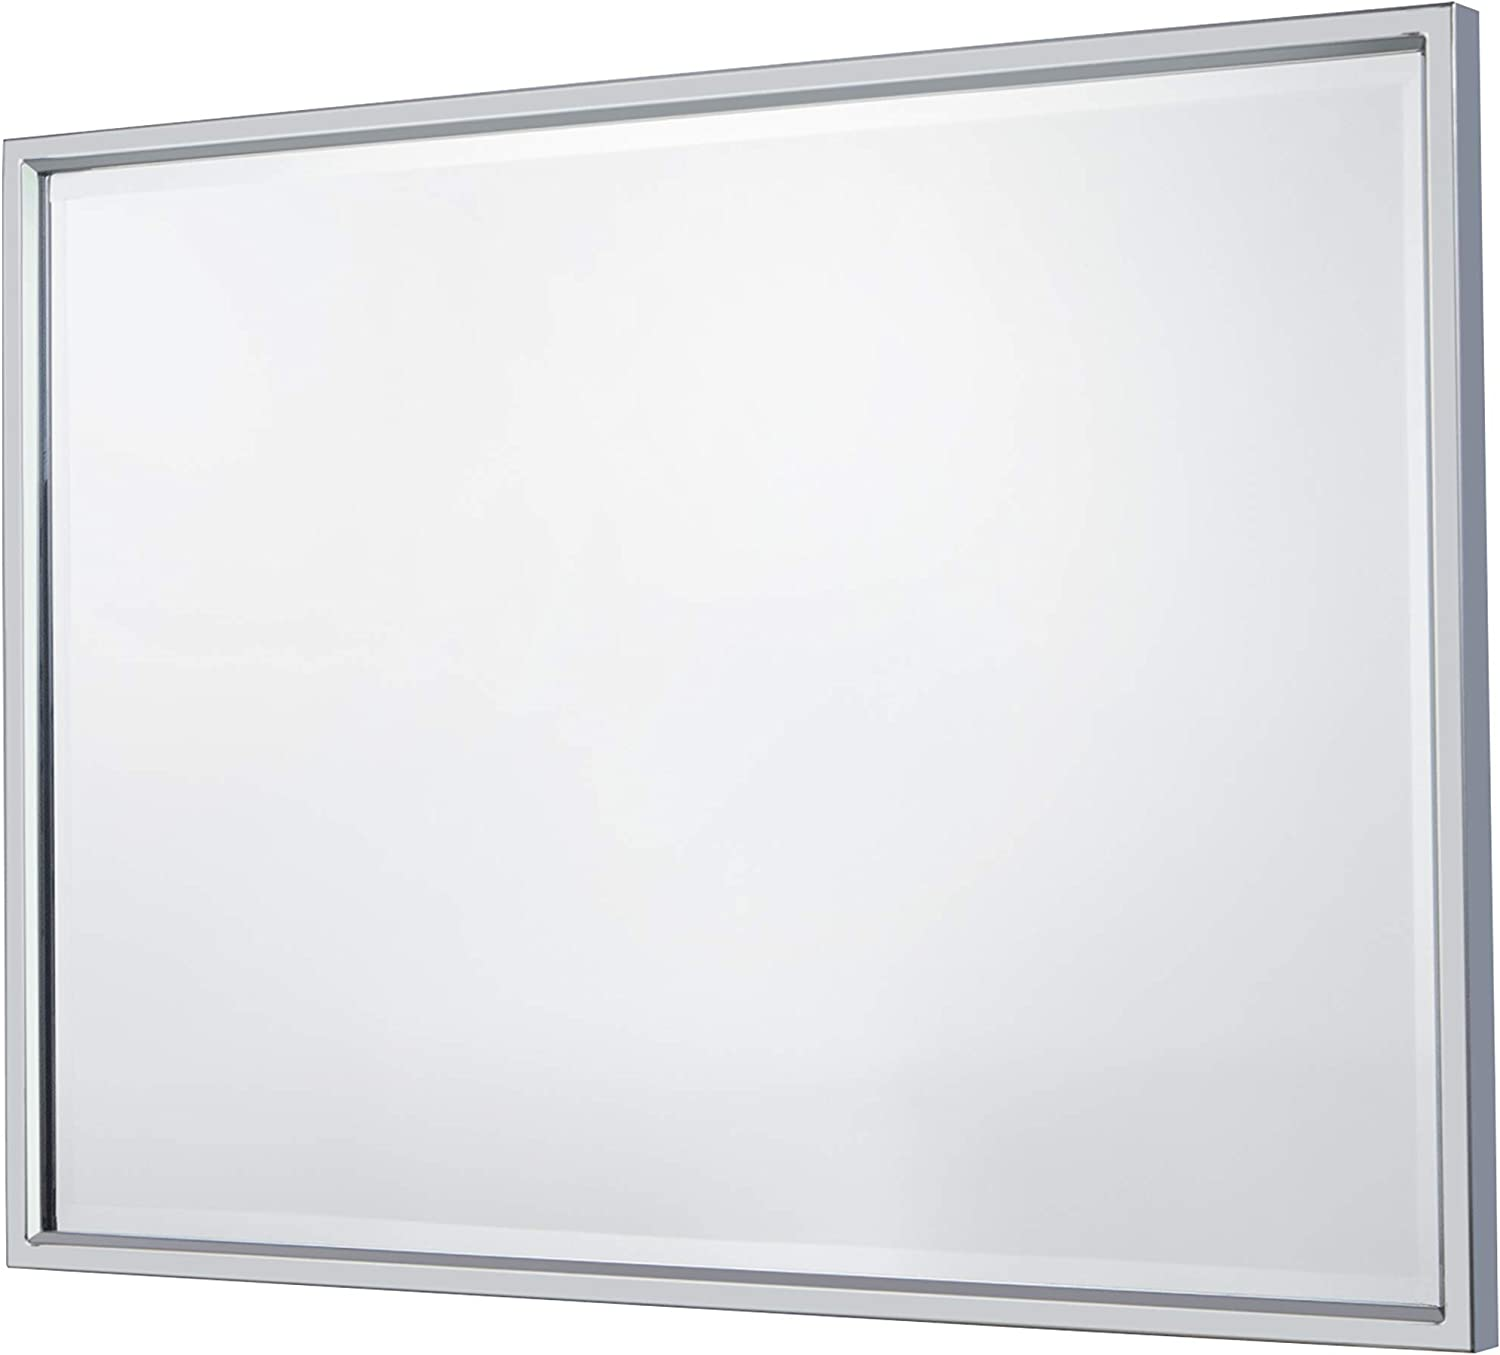 Large Stainless Steel Edging Bathroom Mirror Wall Mirror Finely Slanted Tilting Bathroom Rectangle Hanging Mirror   26-Inch x 36-Inch